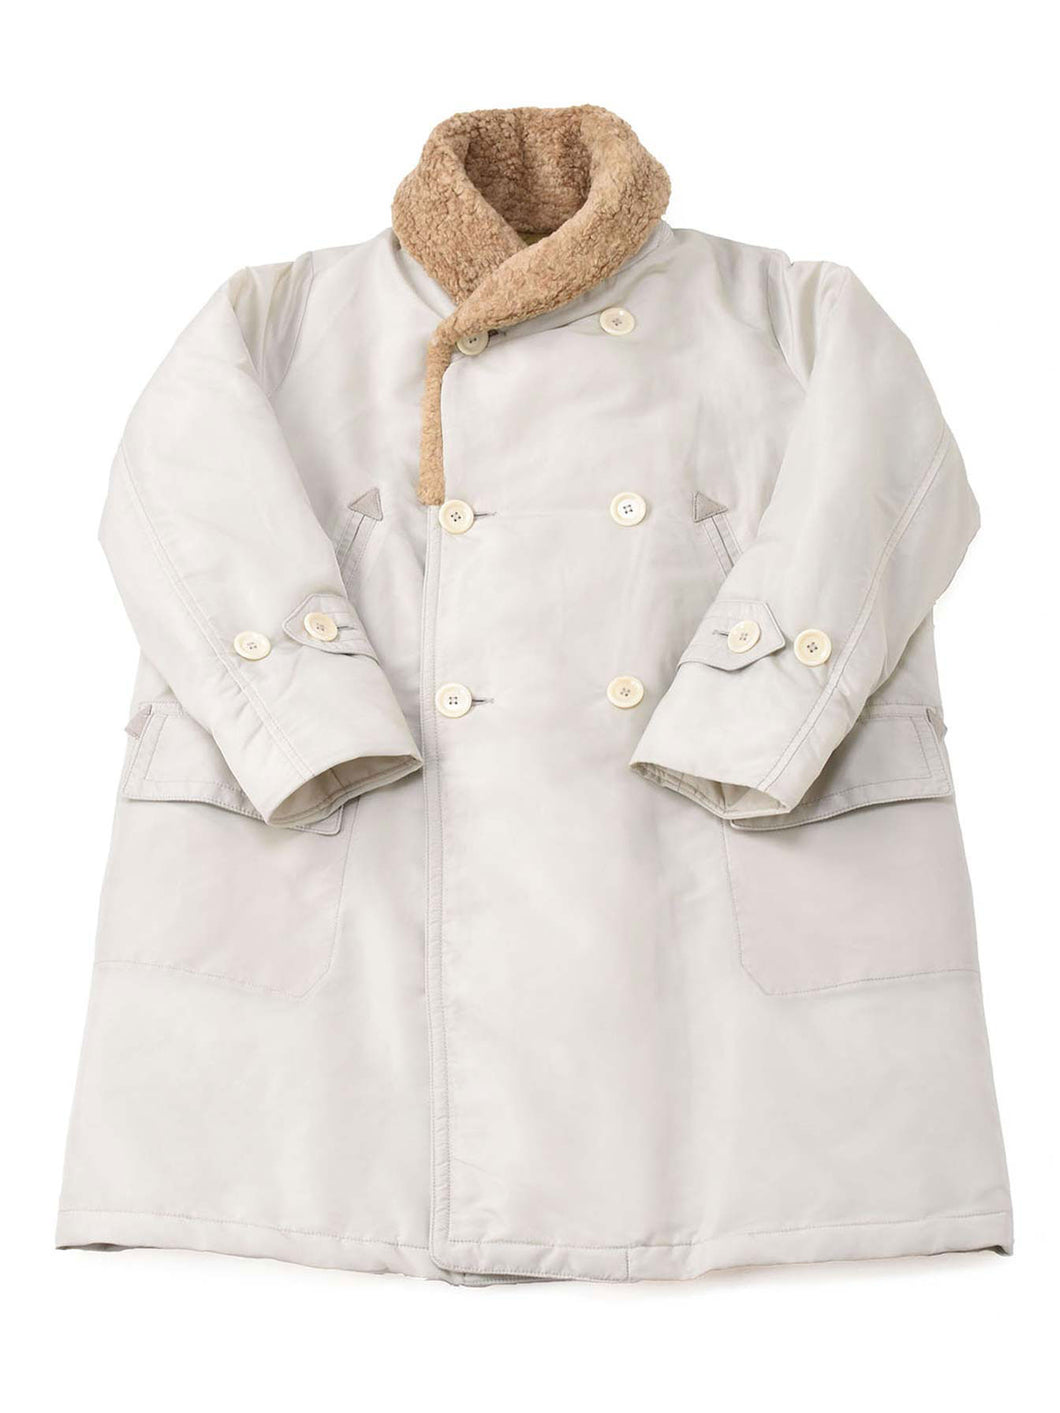 Nylon x Boa Coat in white